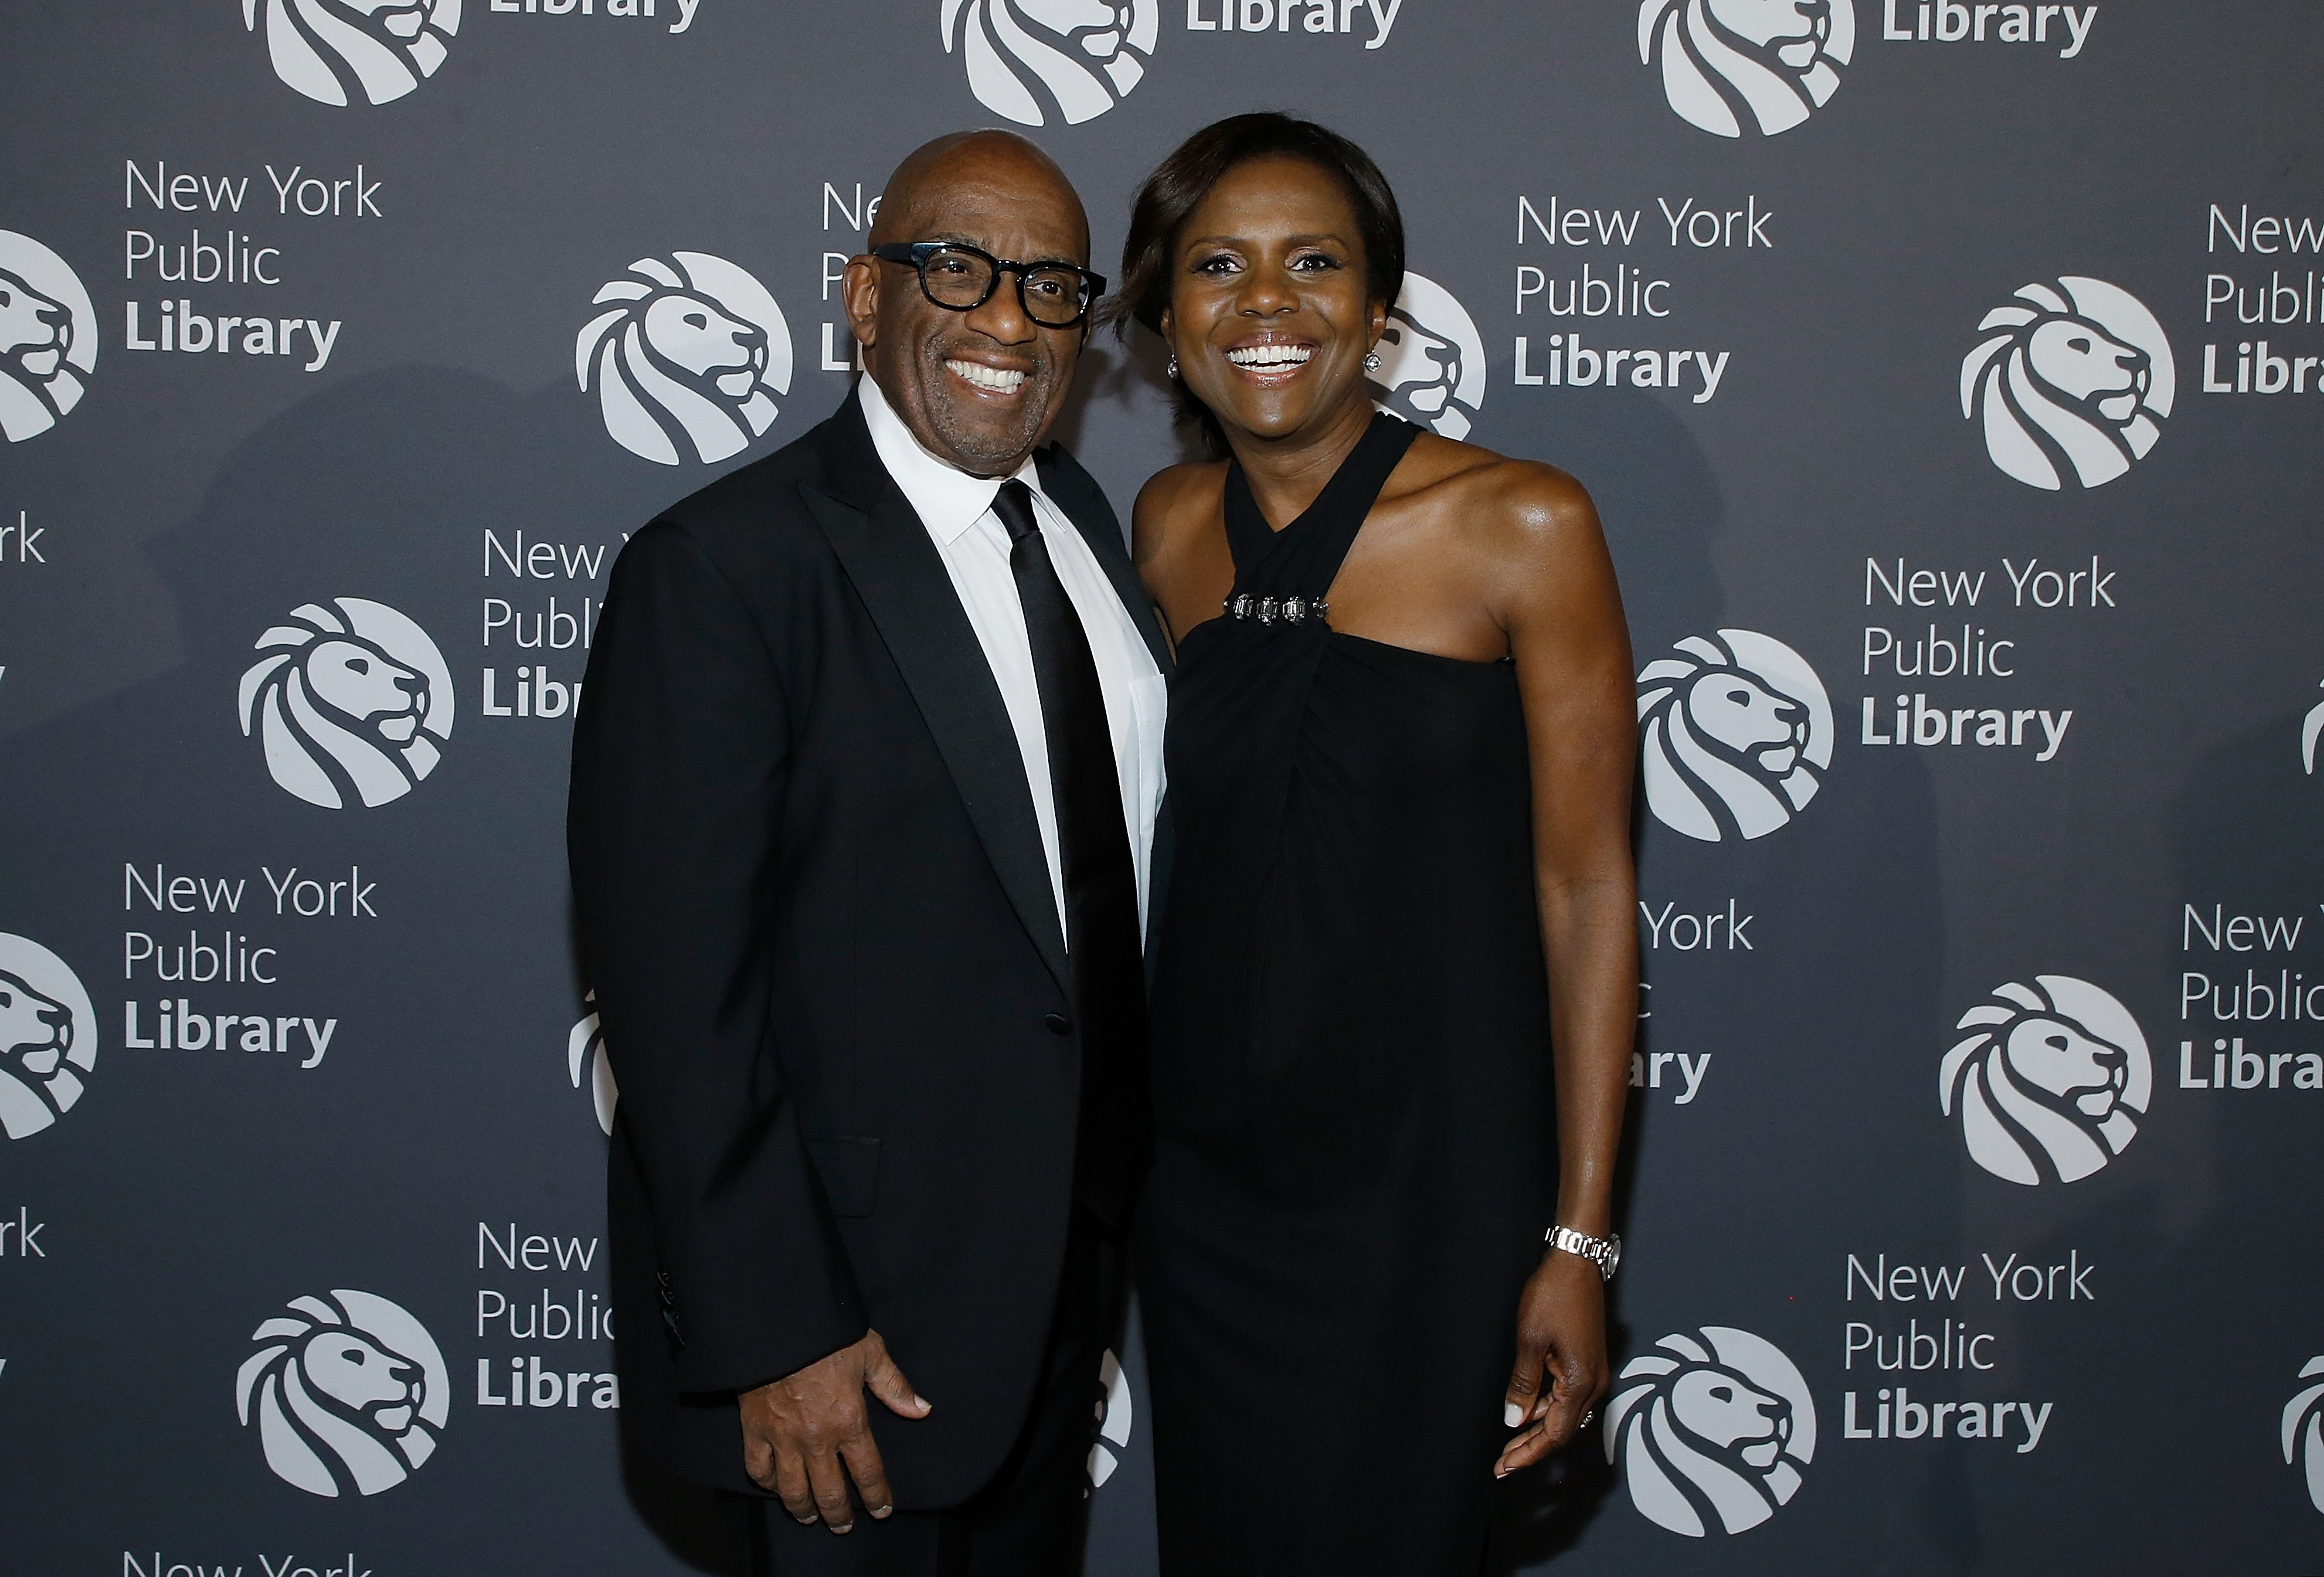 Al Roker and Deborah Roberts attends the New York Public Library 2017 Library Lions Gala at the New York Public Library at the Stephen A. Schwarzman Building on November 6, 2017, in New York City. | Source: Getty Images.